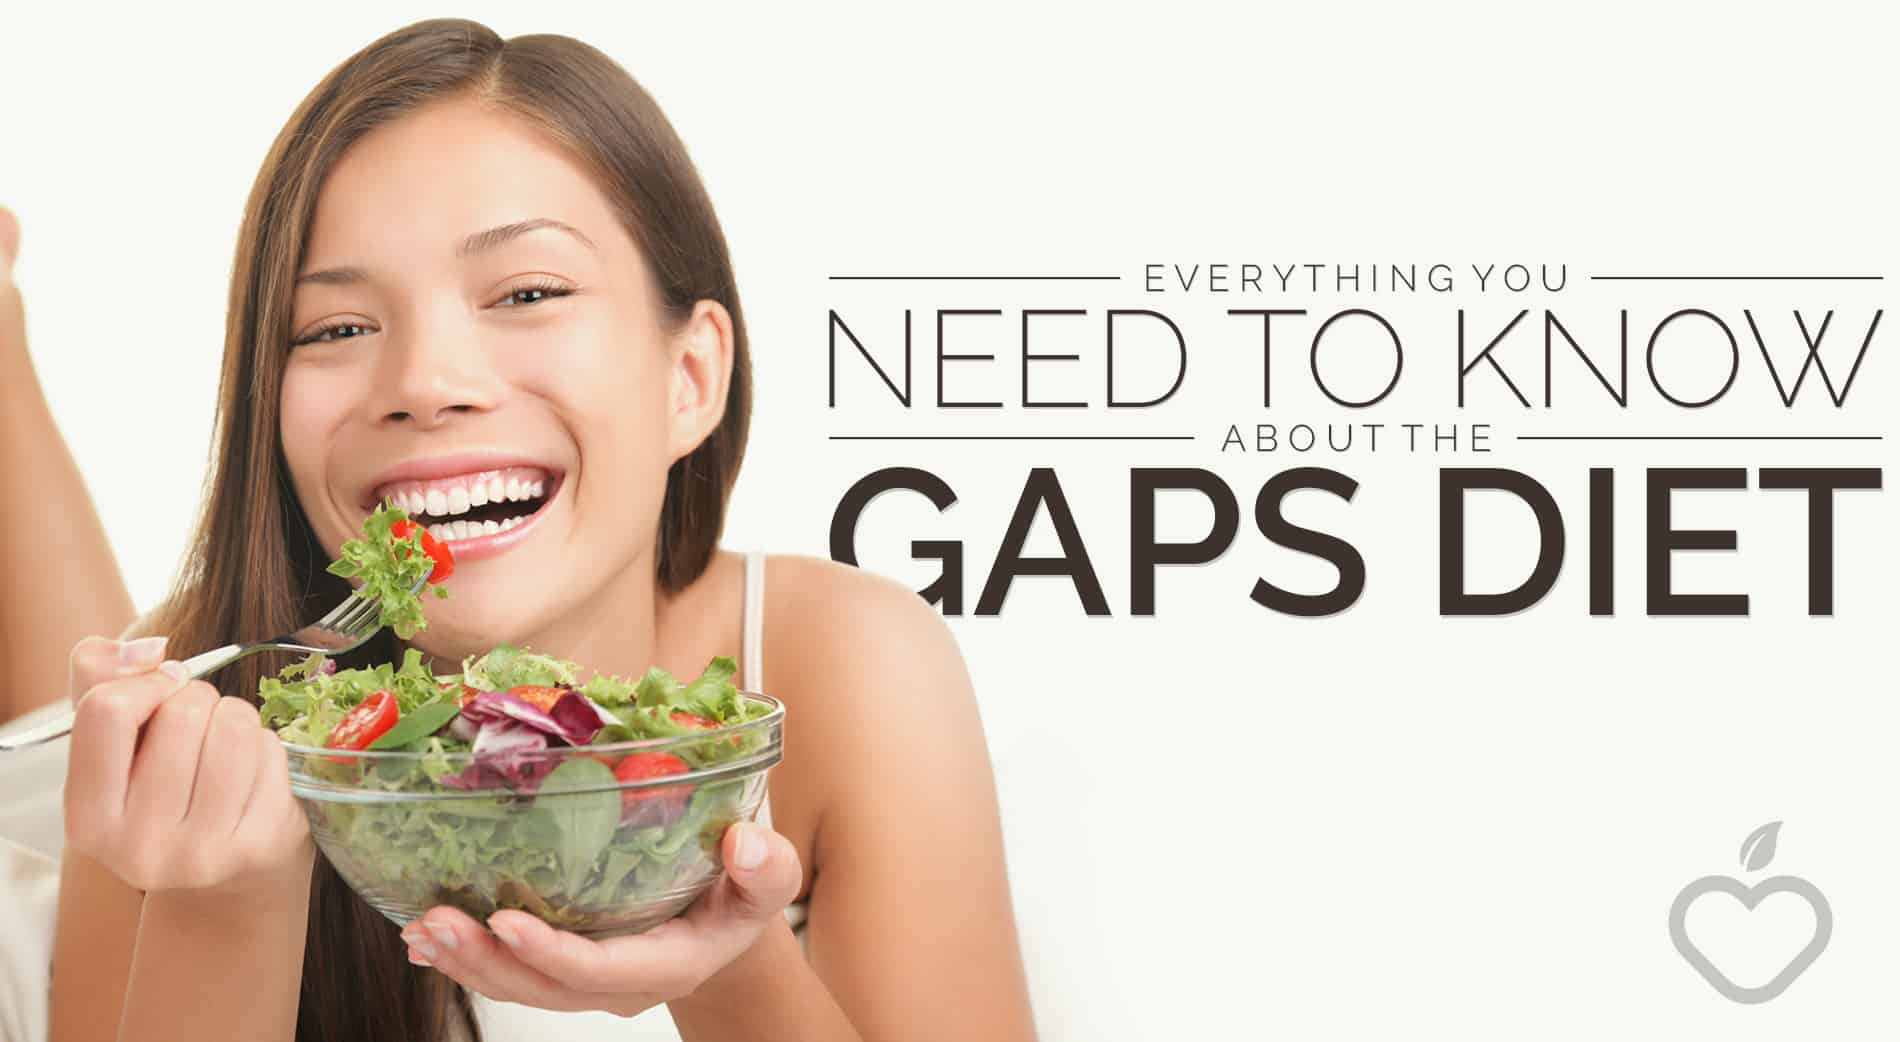 Gaps Diet Image Design 1 - Everything You Need To Know About The Gaps Diet